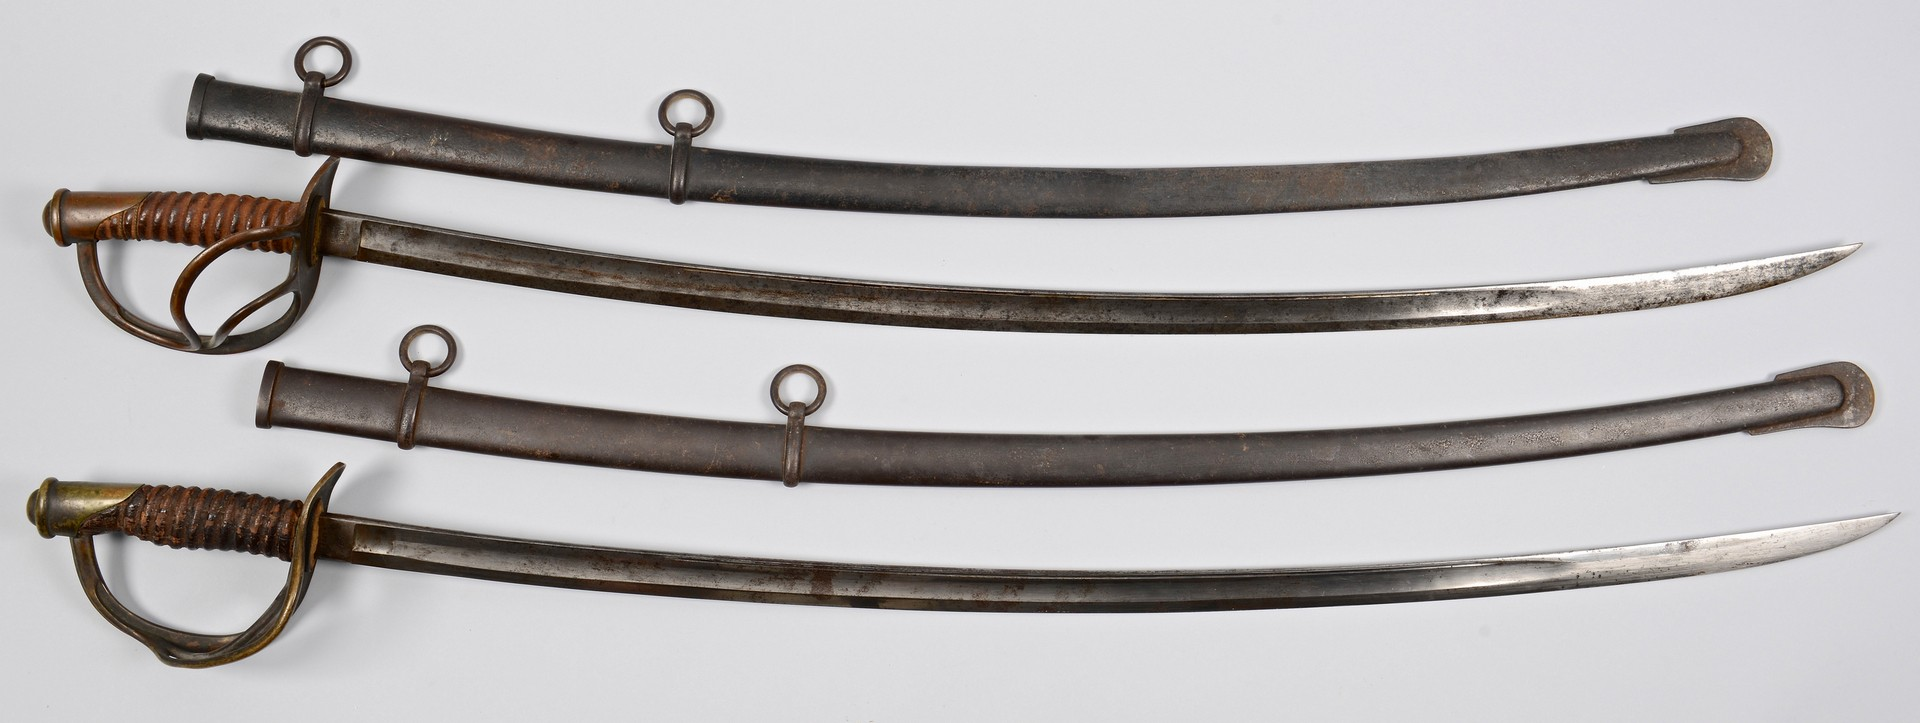 Lot 530: Pair of Model 1860 Swords, Civil War